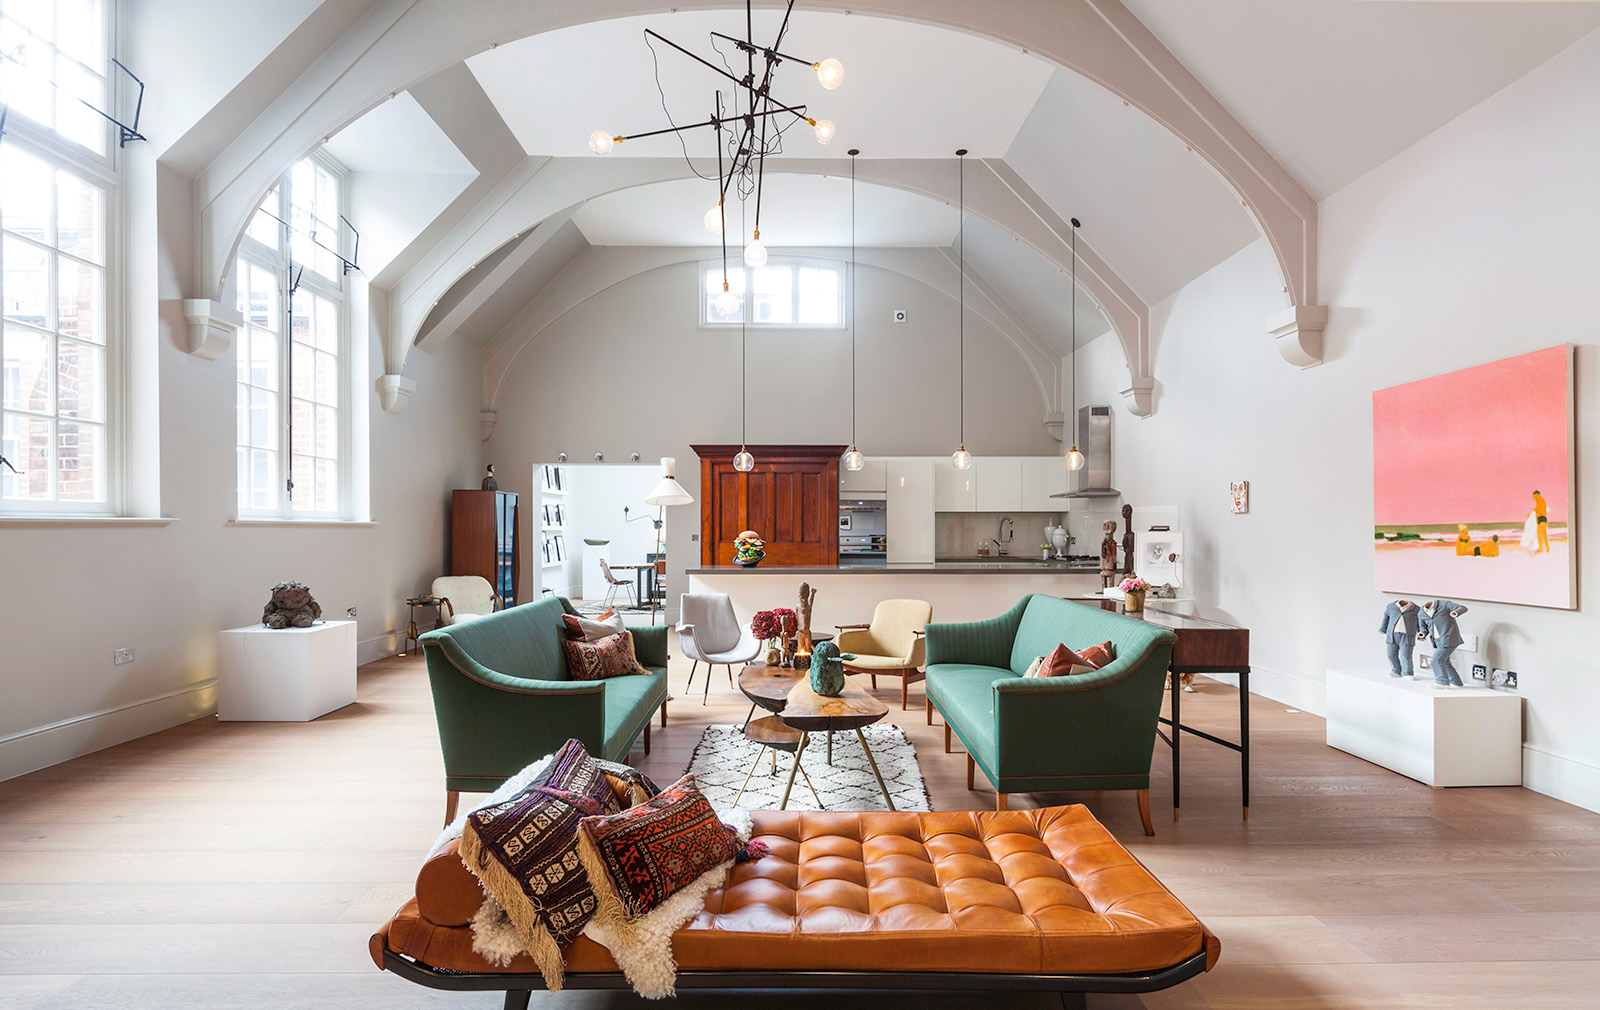 Converted courthouse - the most unusual London homes for sale right now